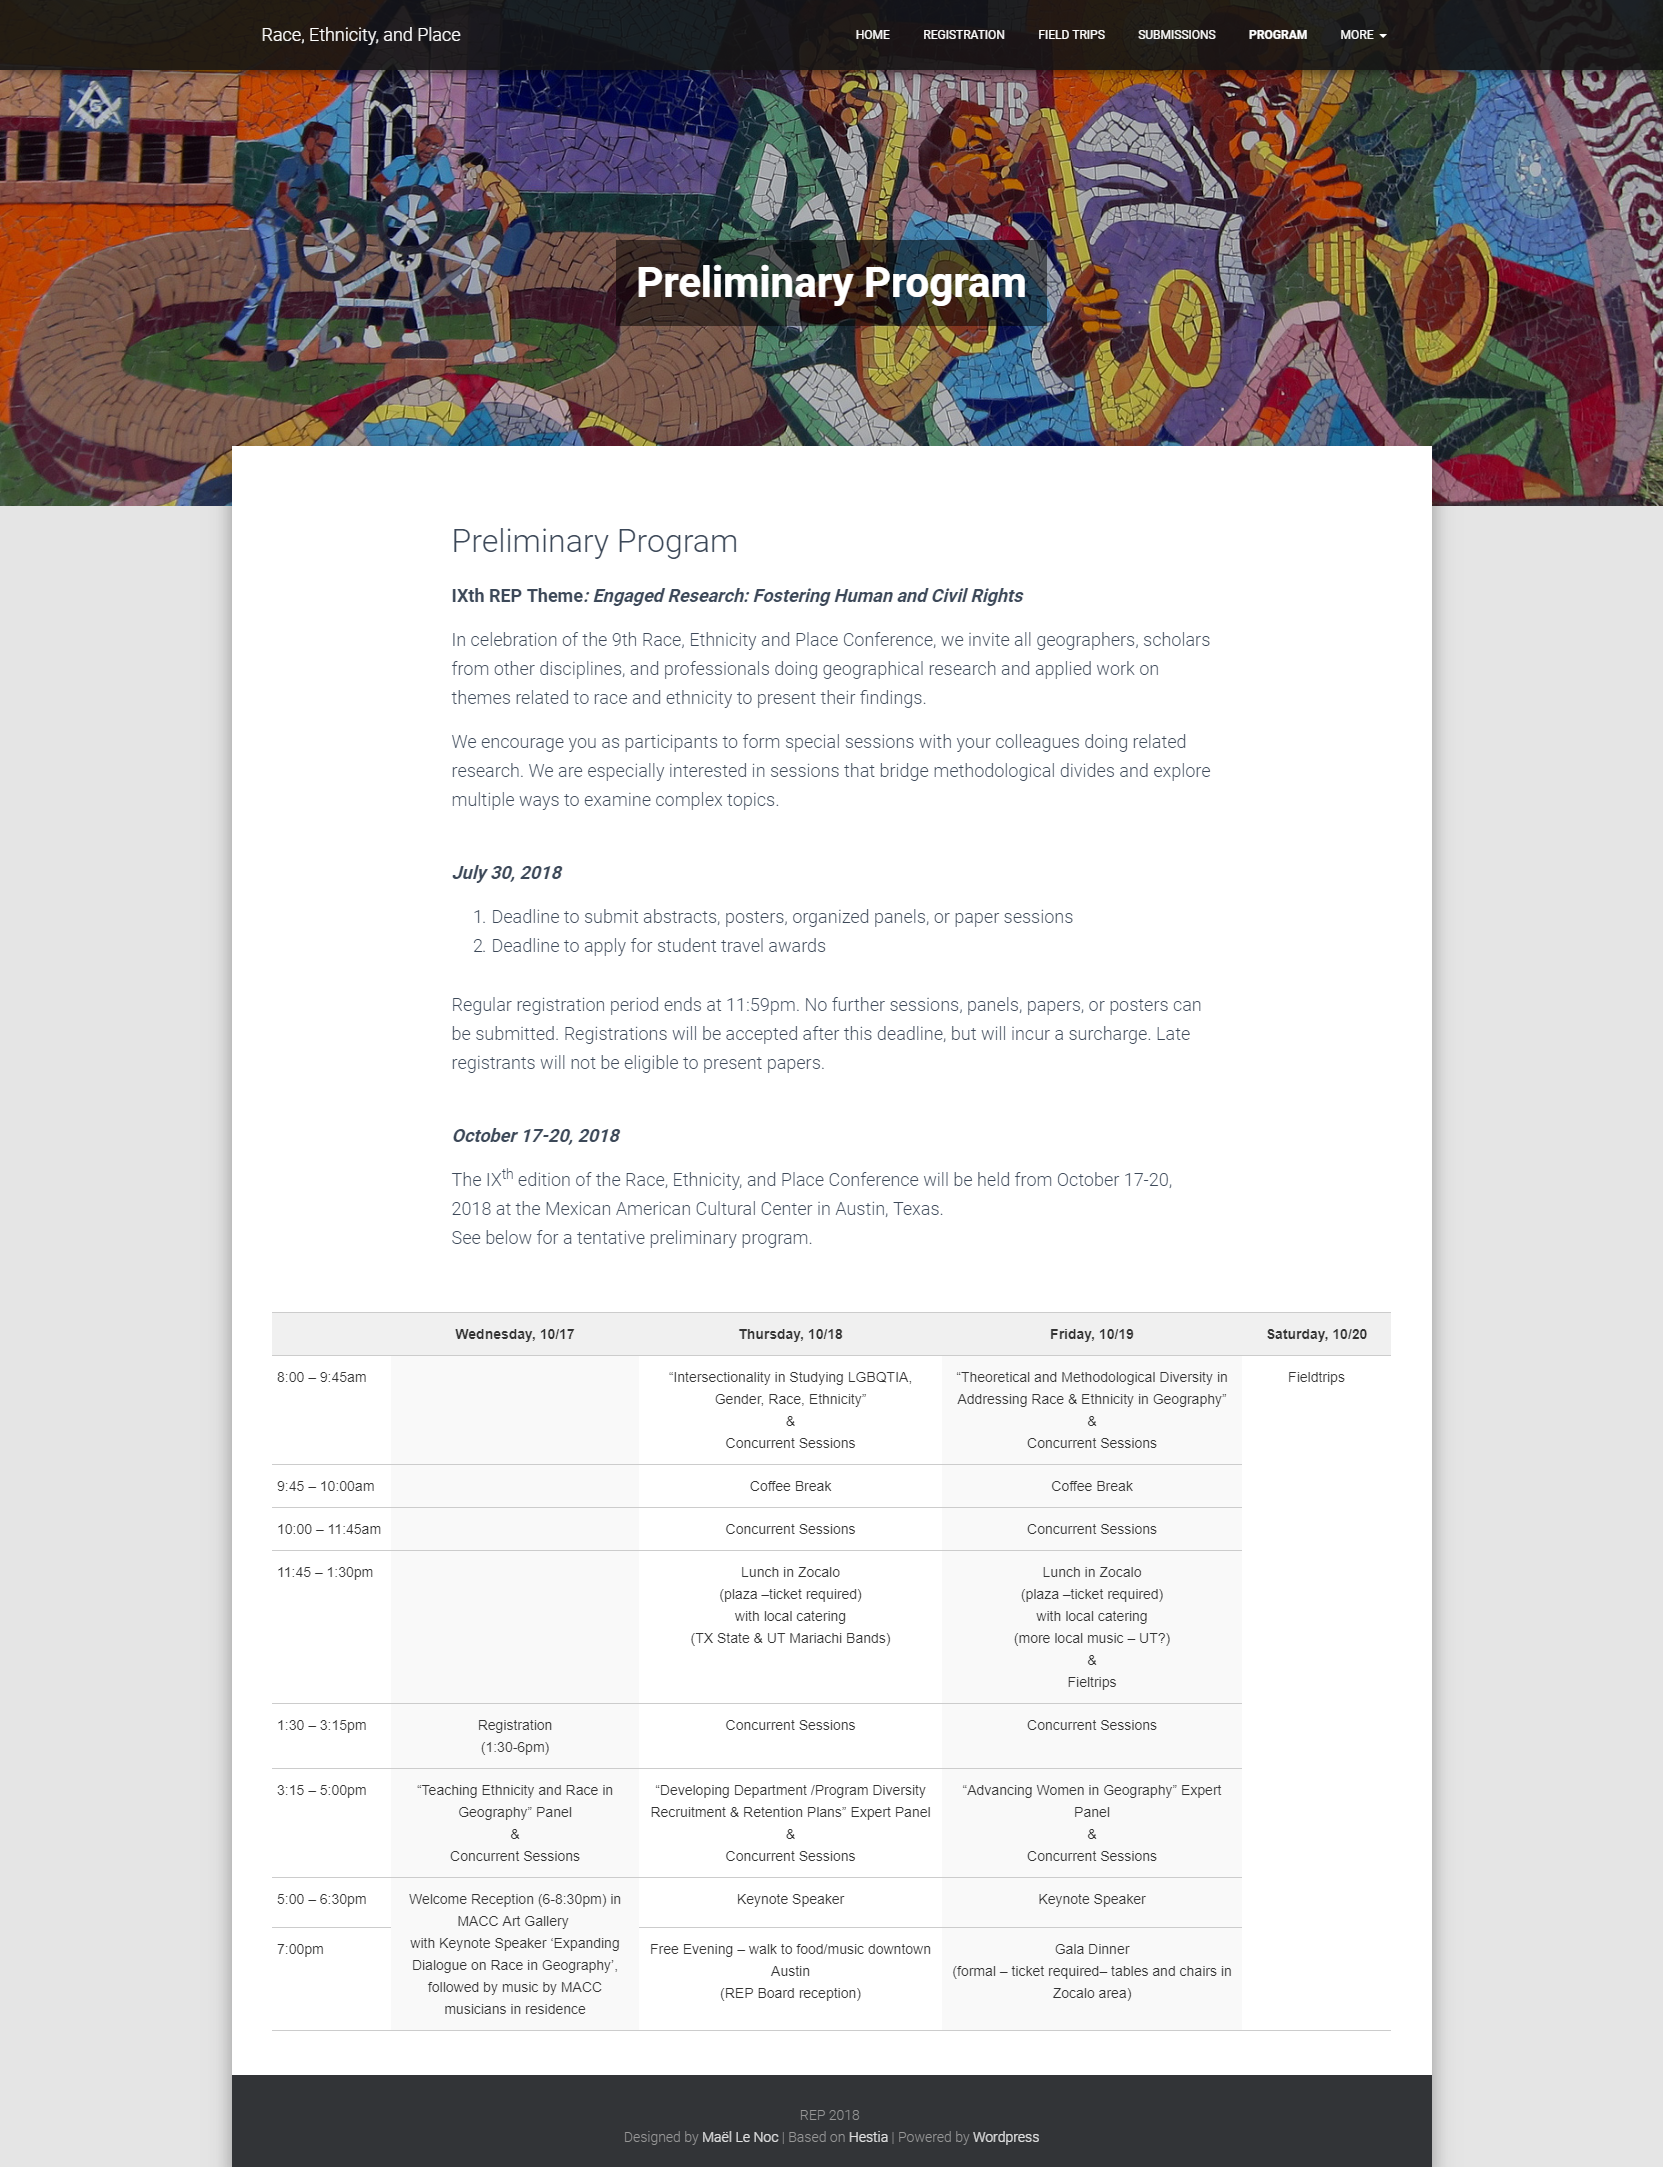 REP conference website - Program page